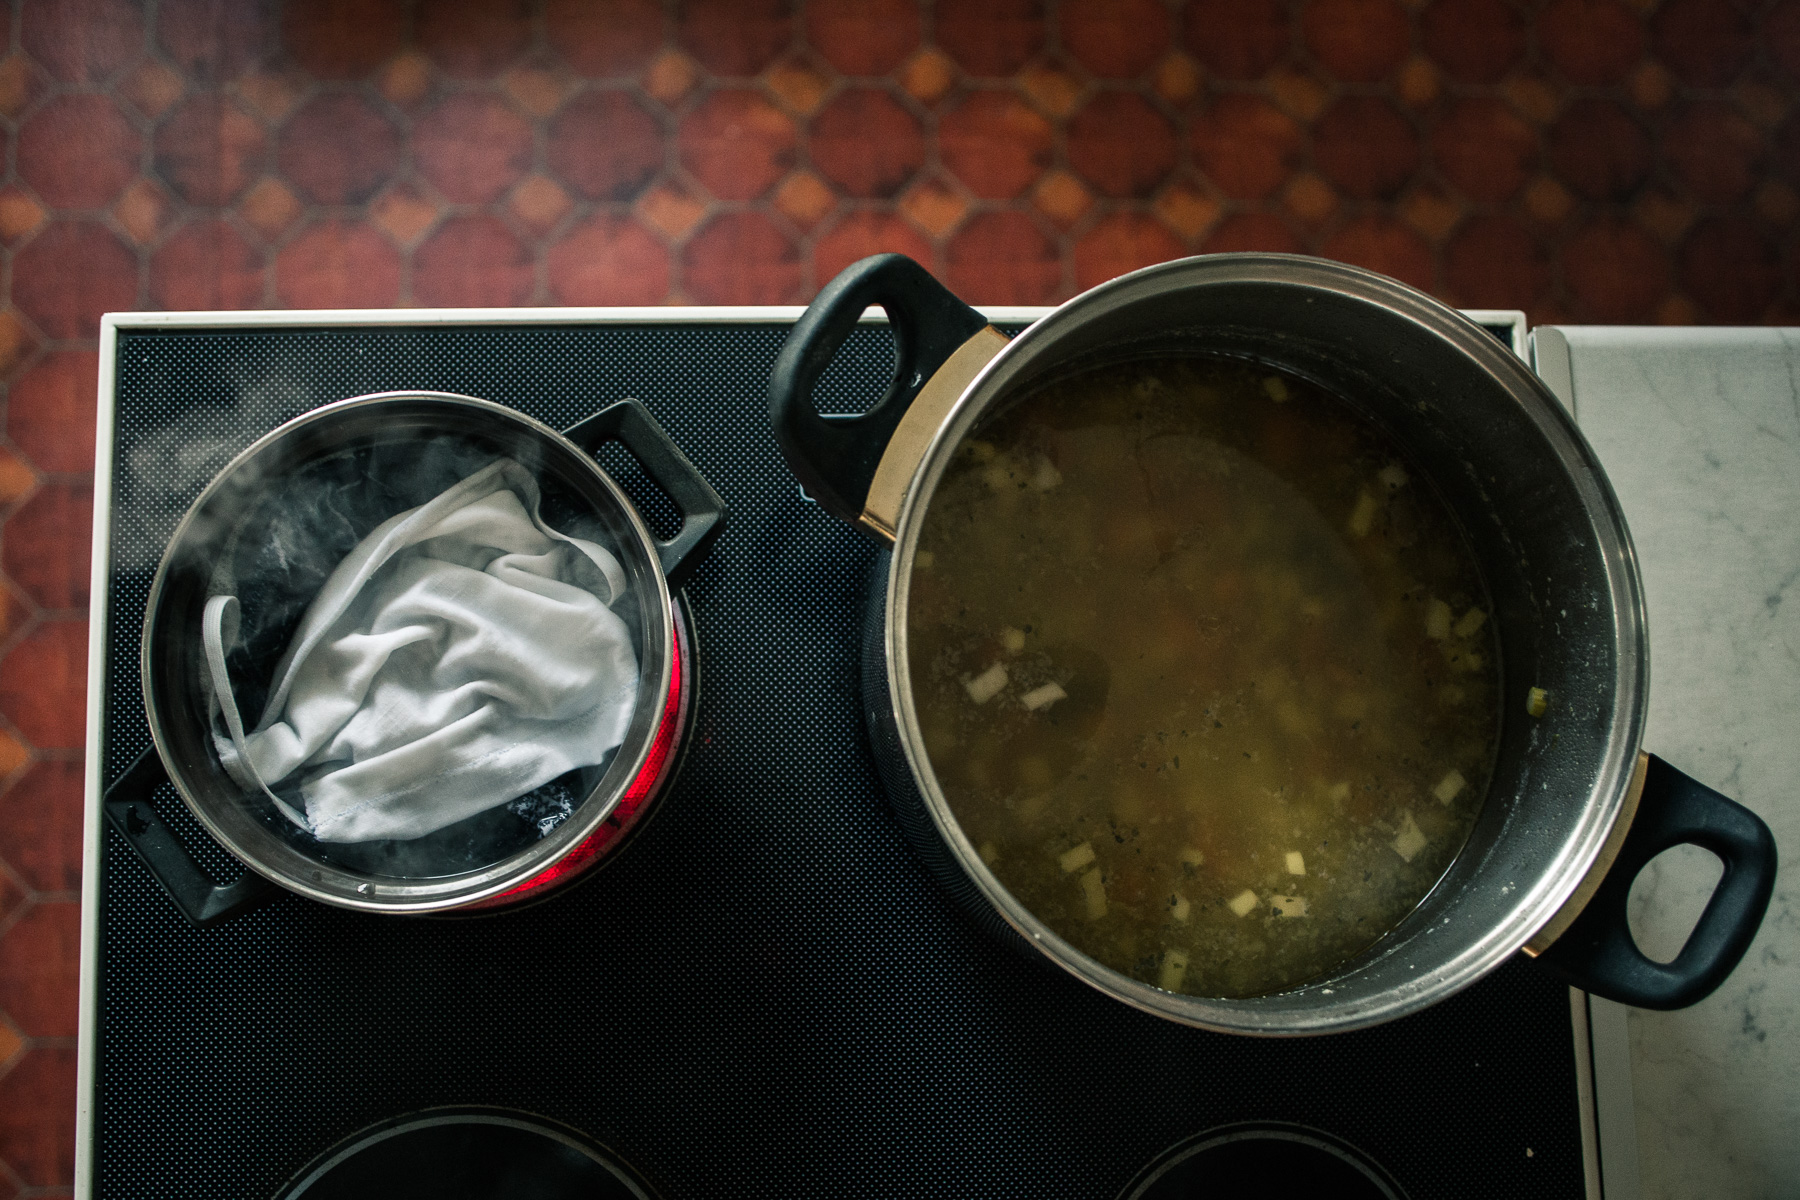 A homemade mask is washed and boiled after use next to a pot of vegetable soup on the stove.